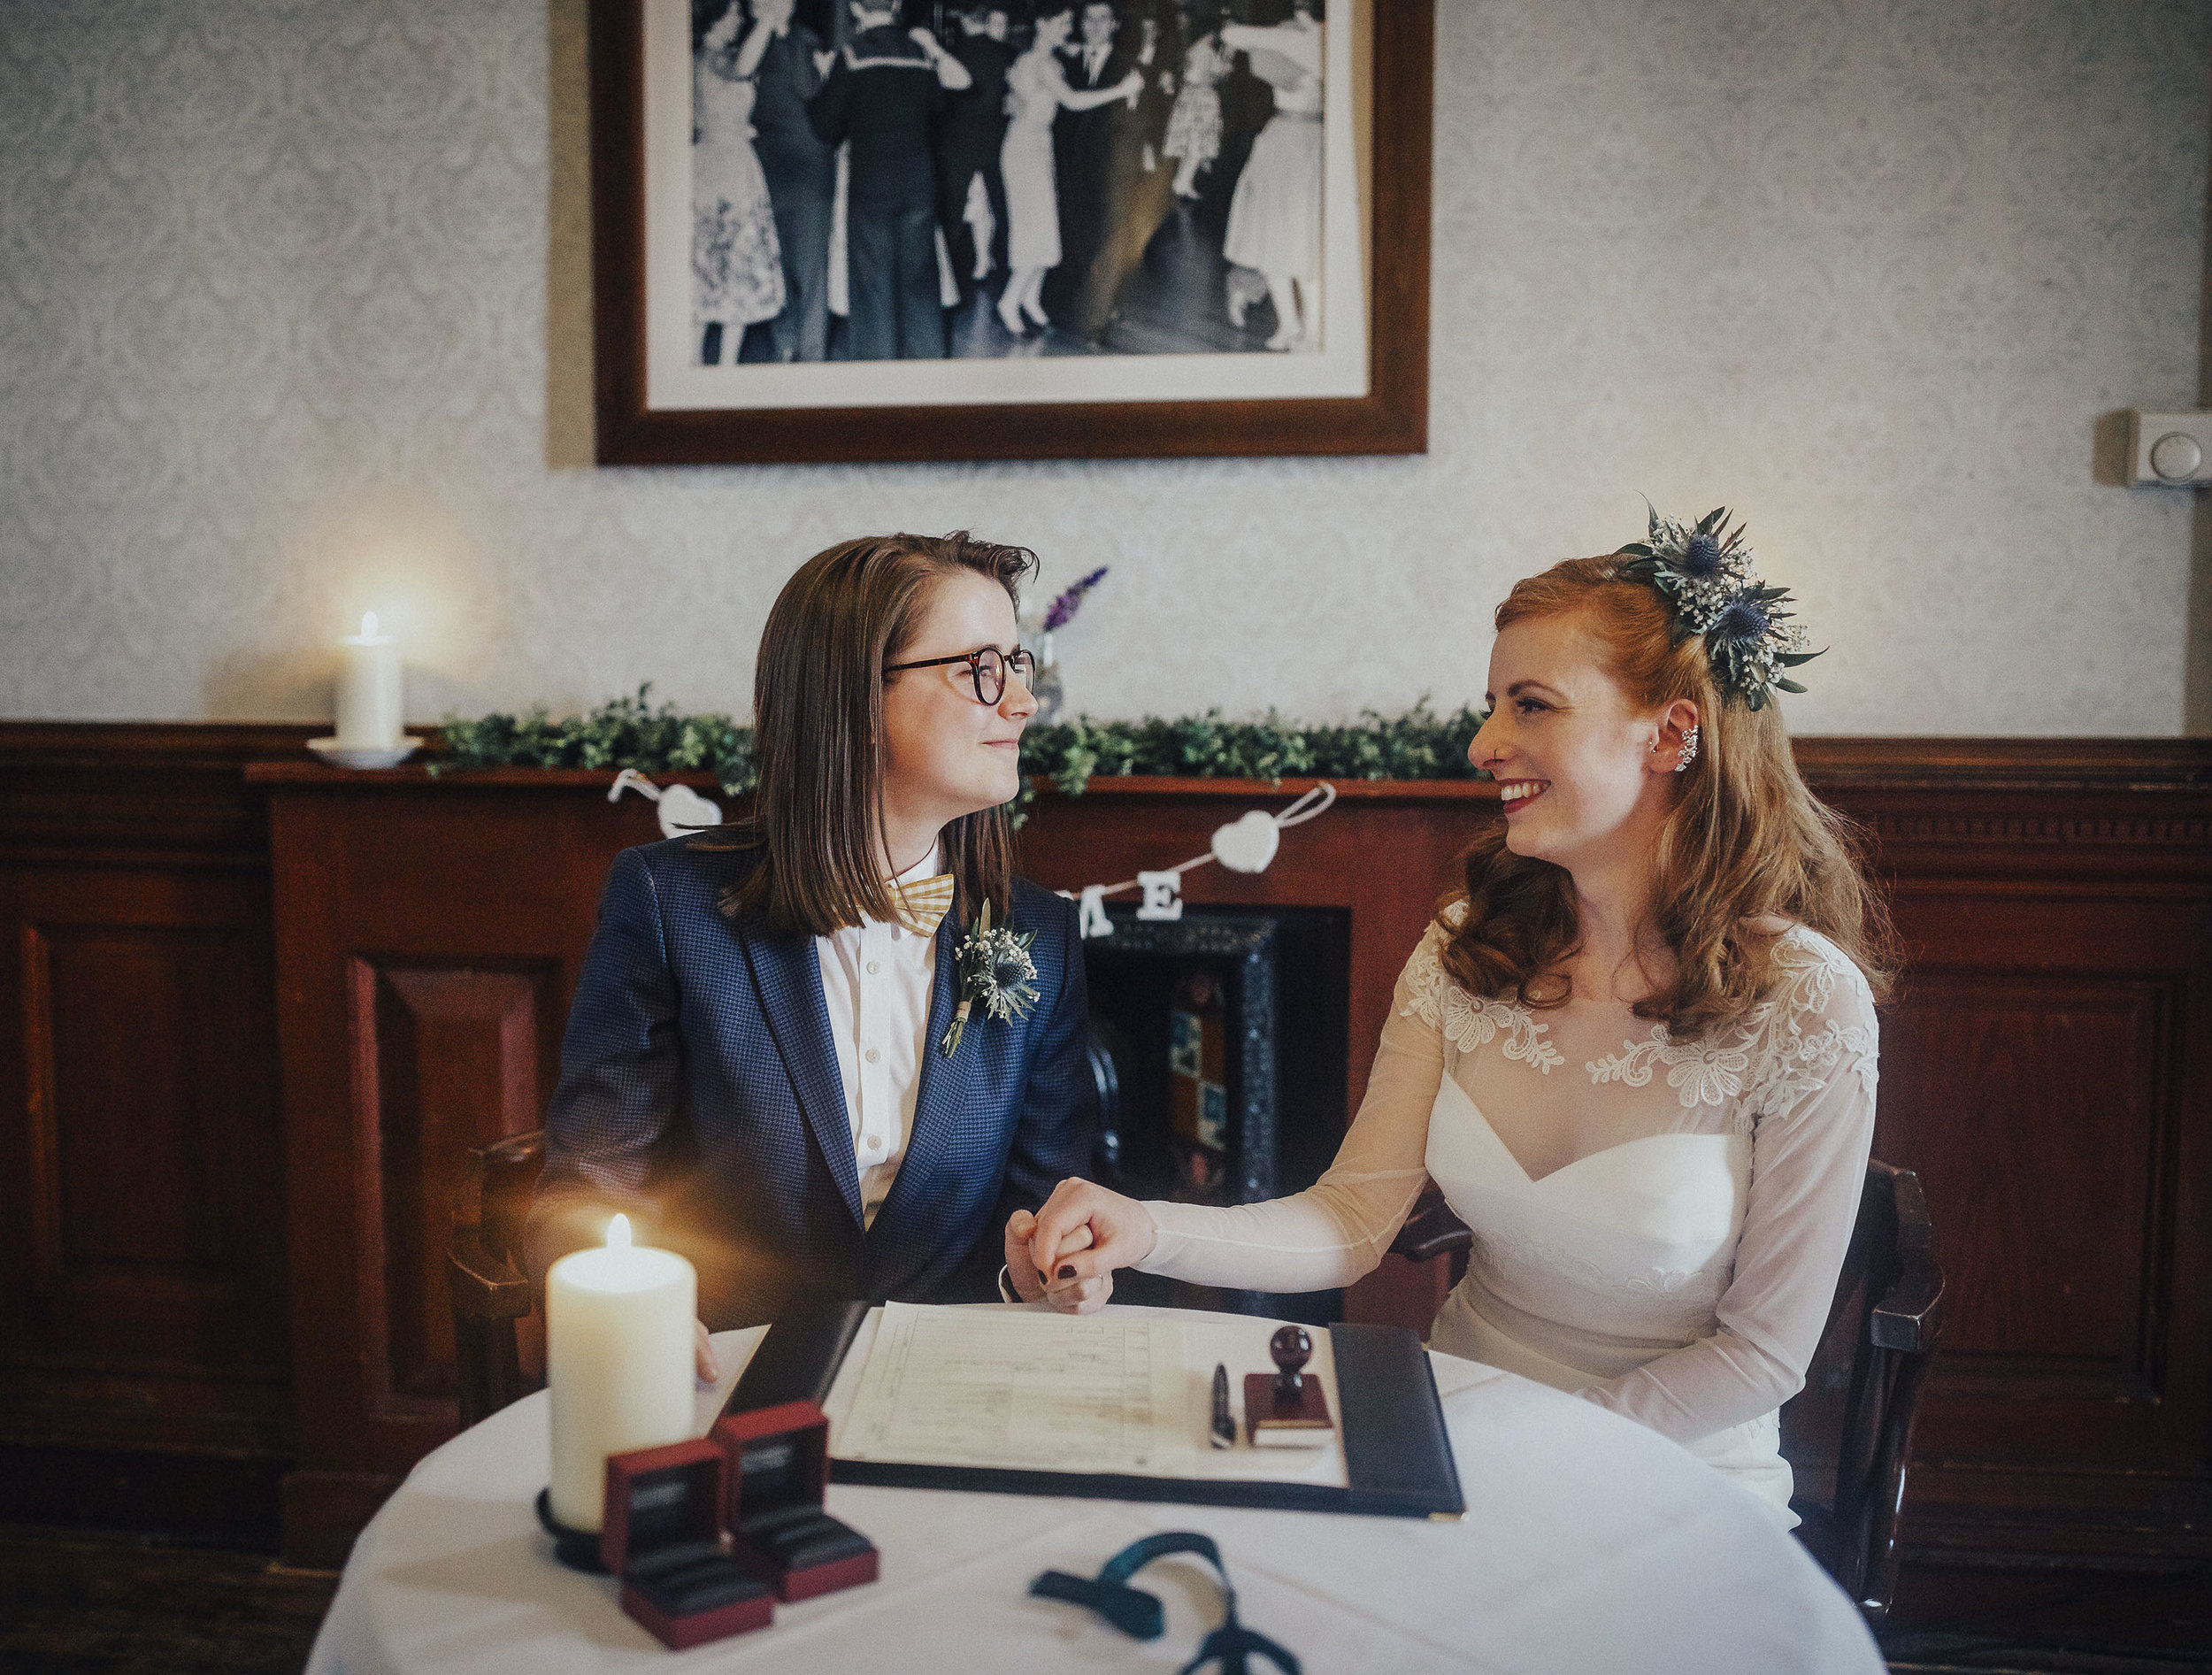 SAME_SEX_WEDDING_PHOTOGRAPHER_SLOANS_GLASGOW_PJ_PHILLIPS_PHOTOGRAPHY_46.jpg